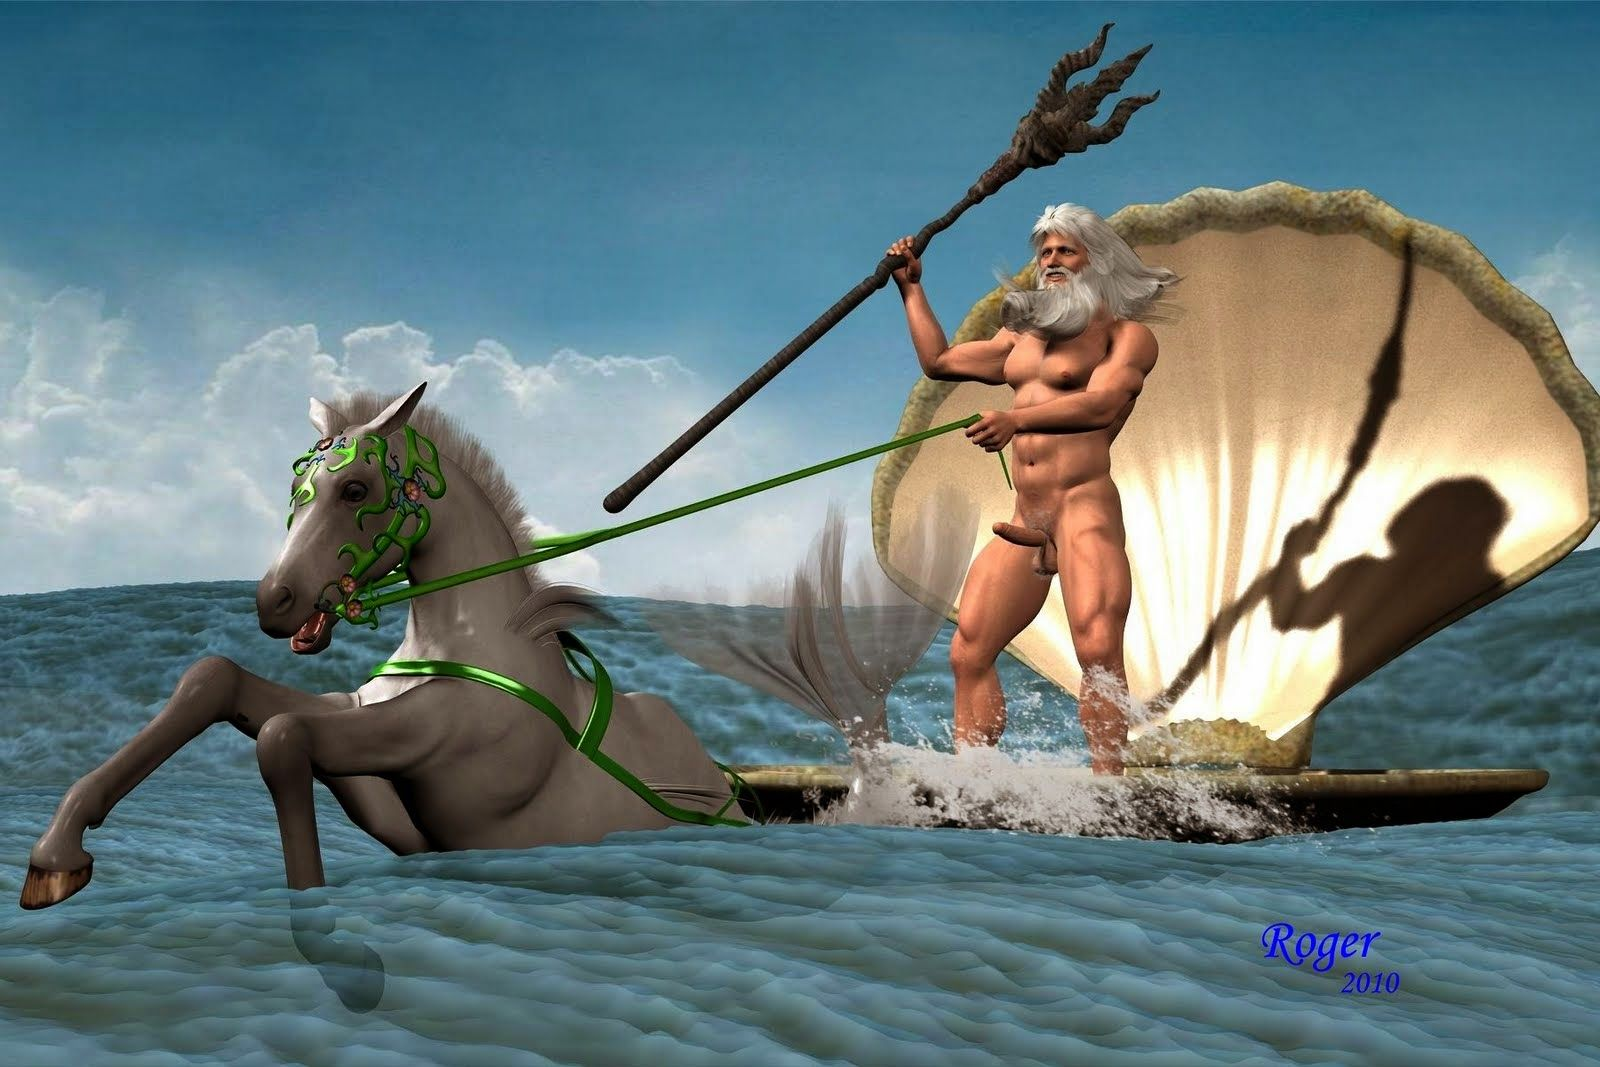 neptune images of the god - Google Search | Neptune's bounty ...